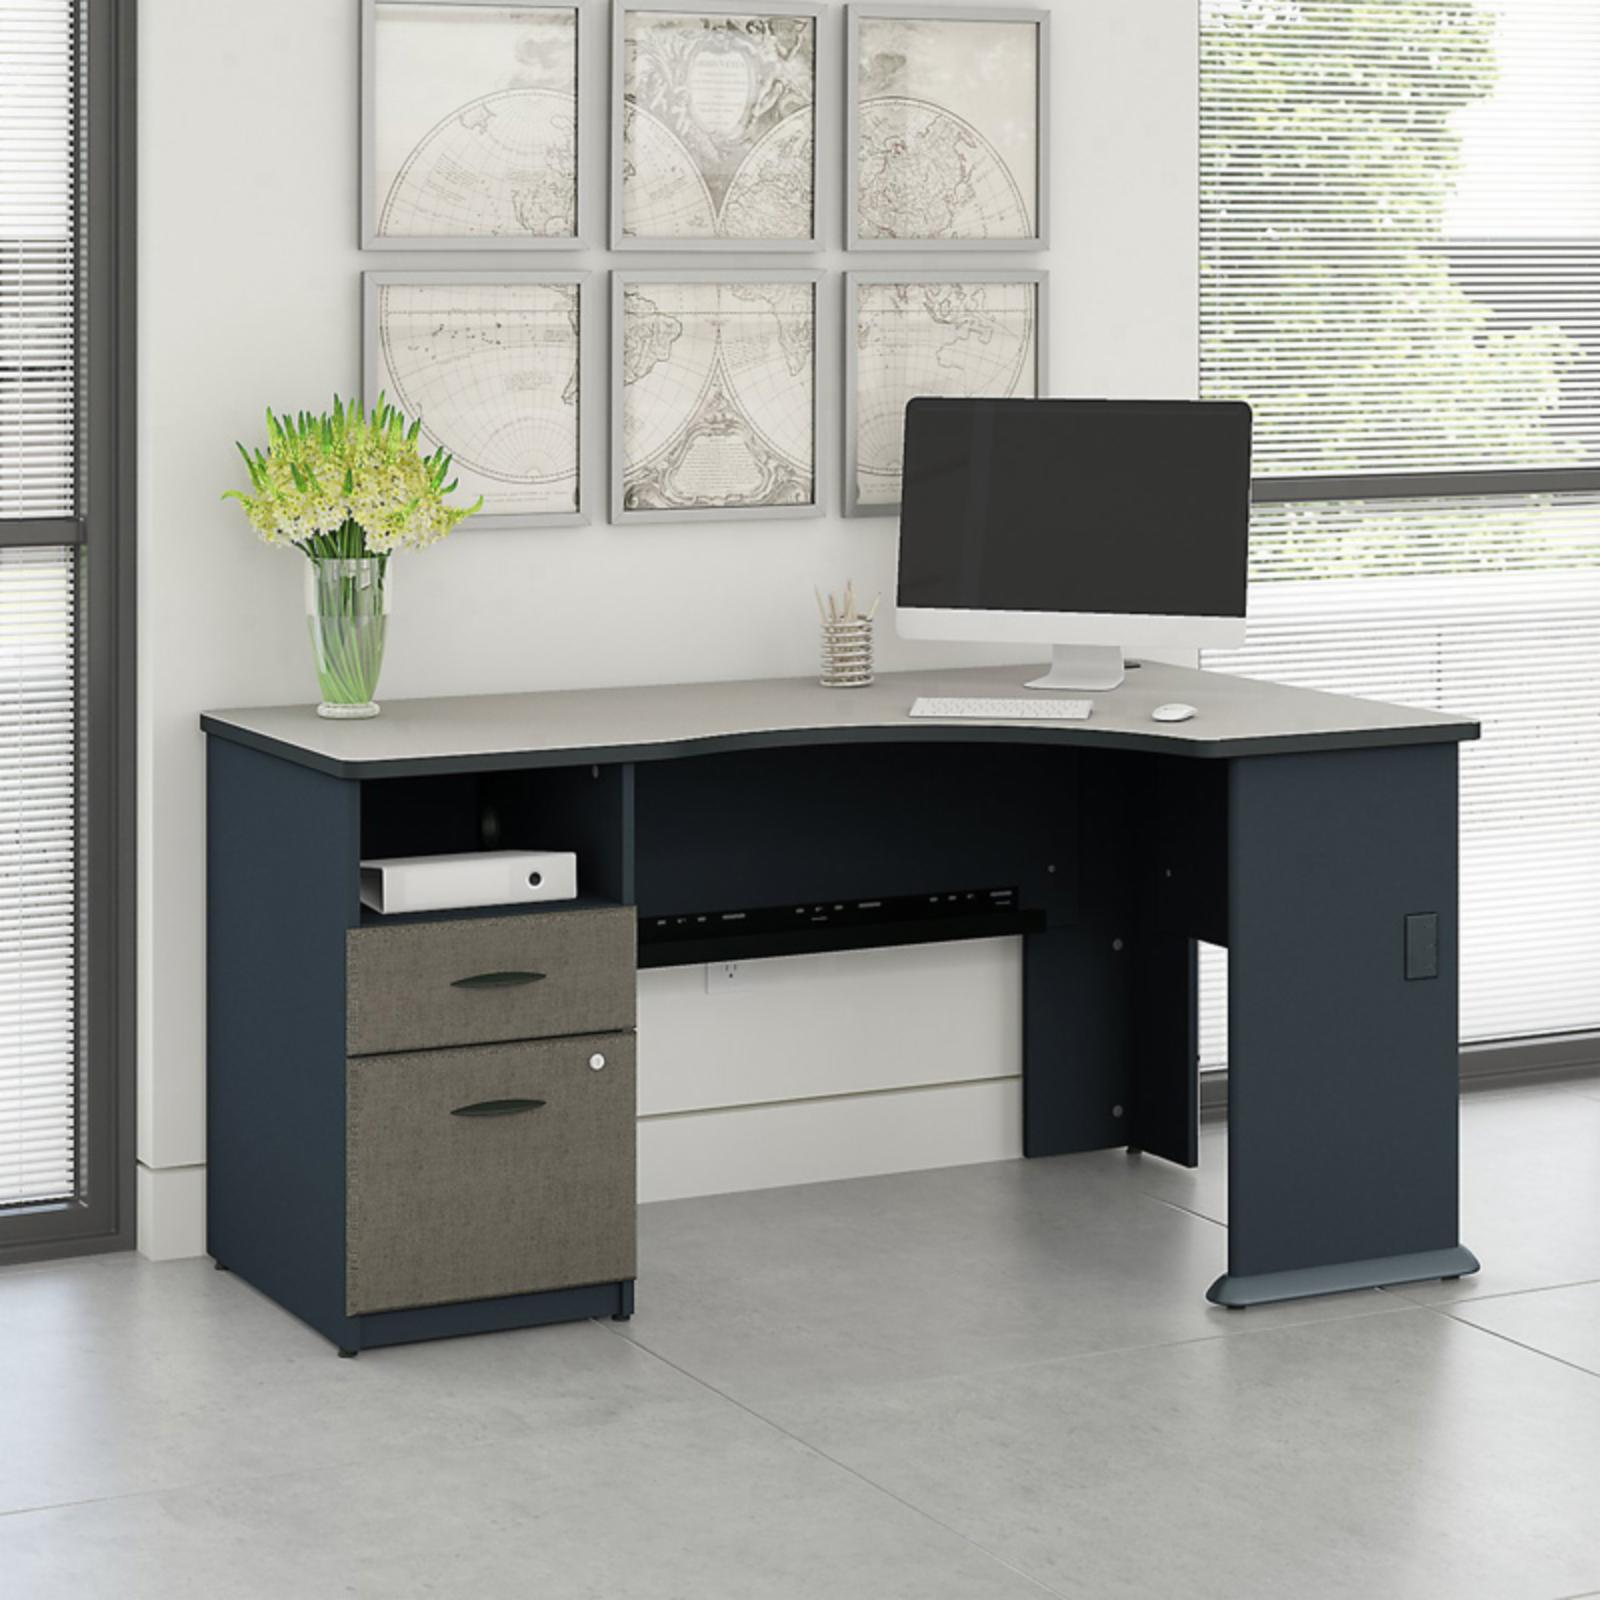 Office Connect Access Corner Office Desk with Pedestal - ACS001SL